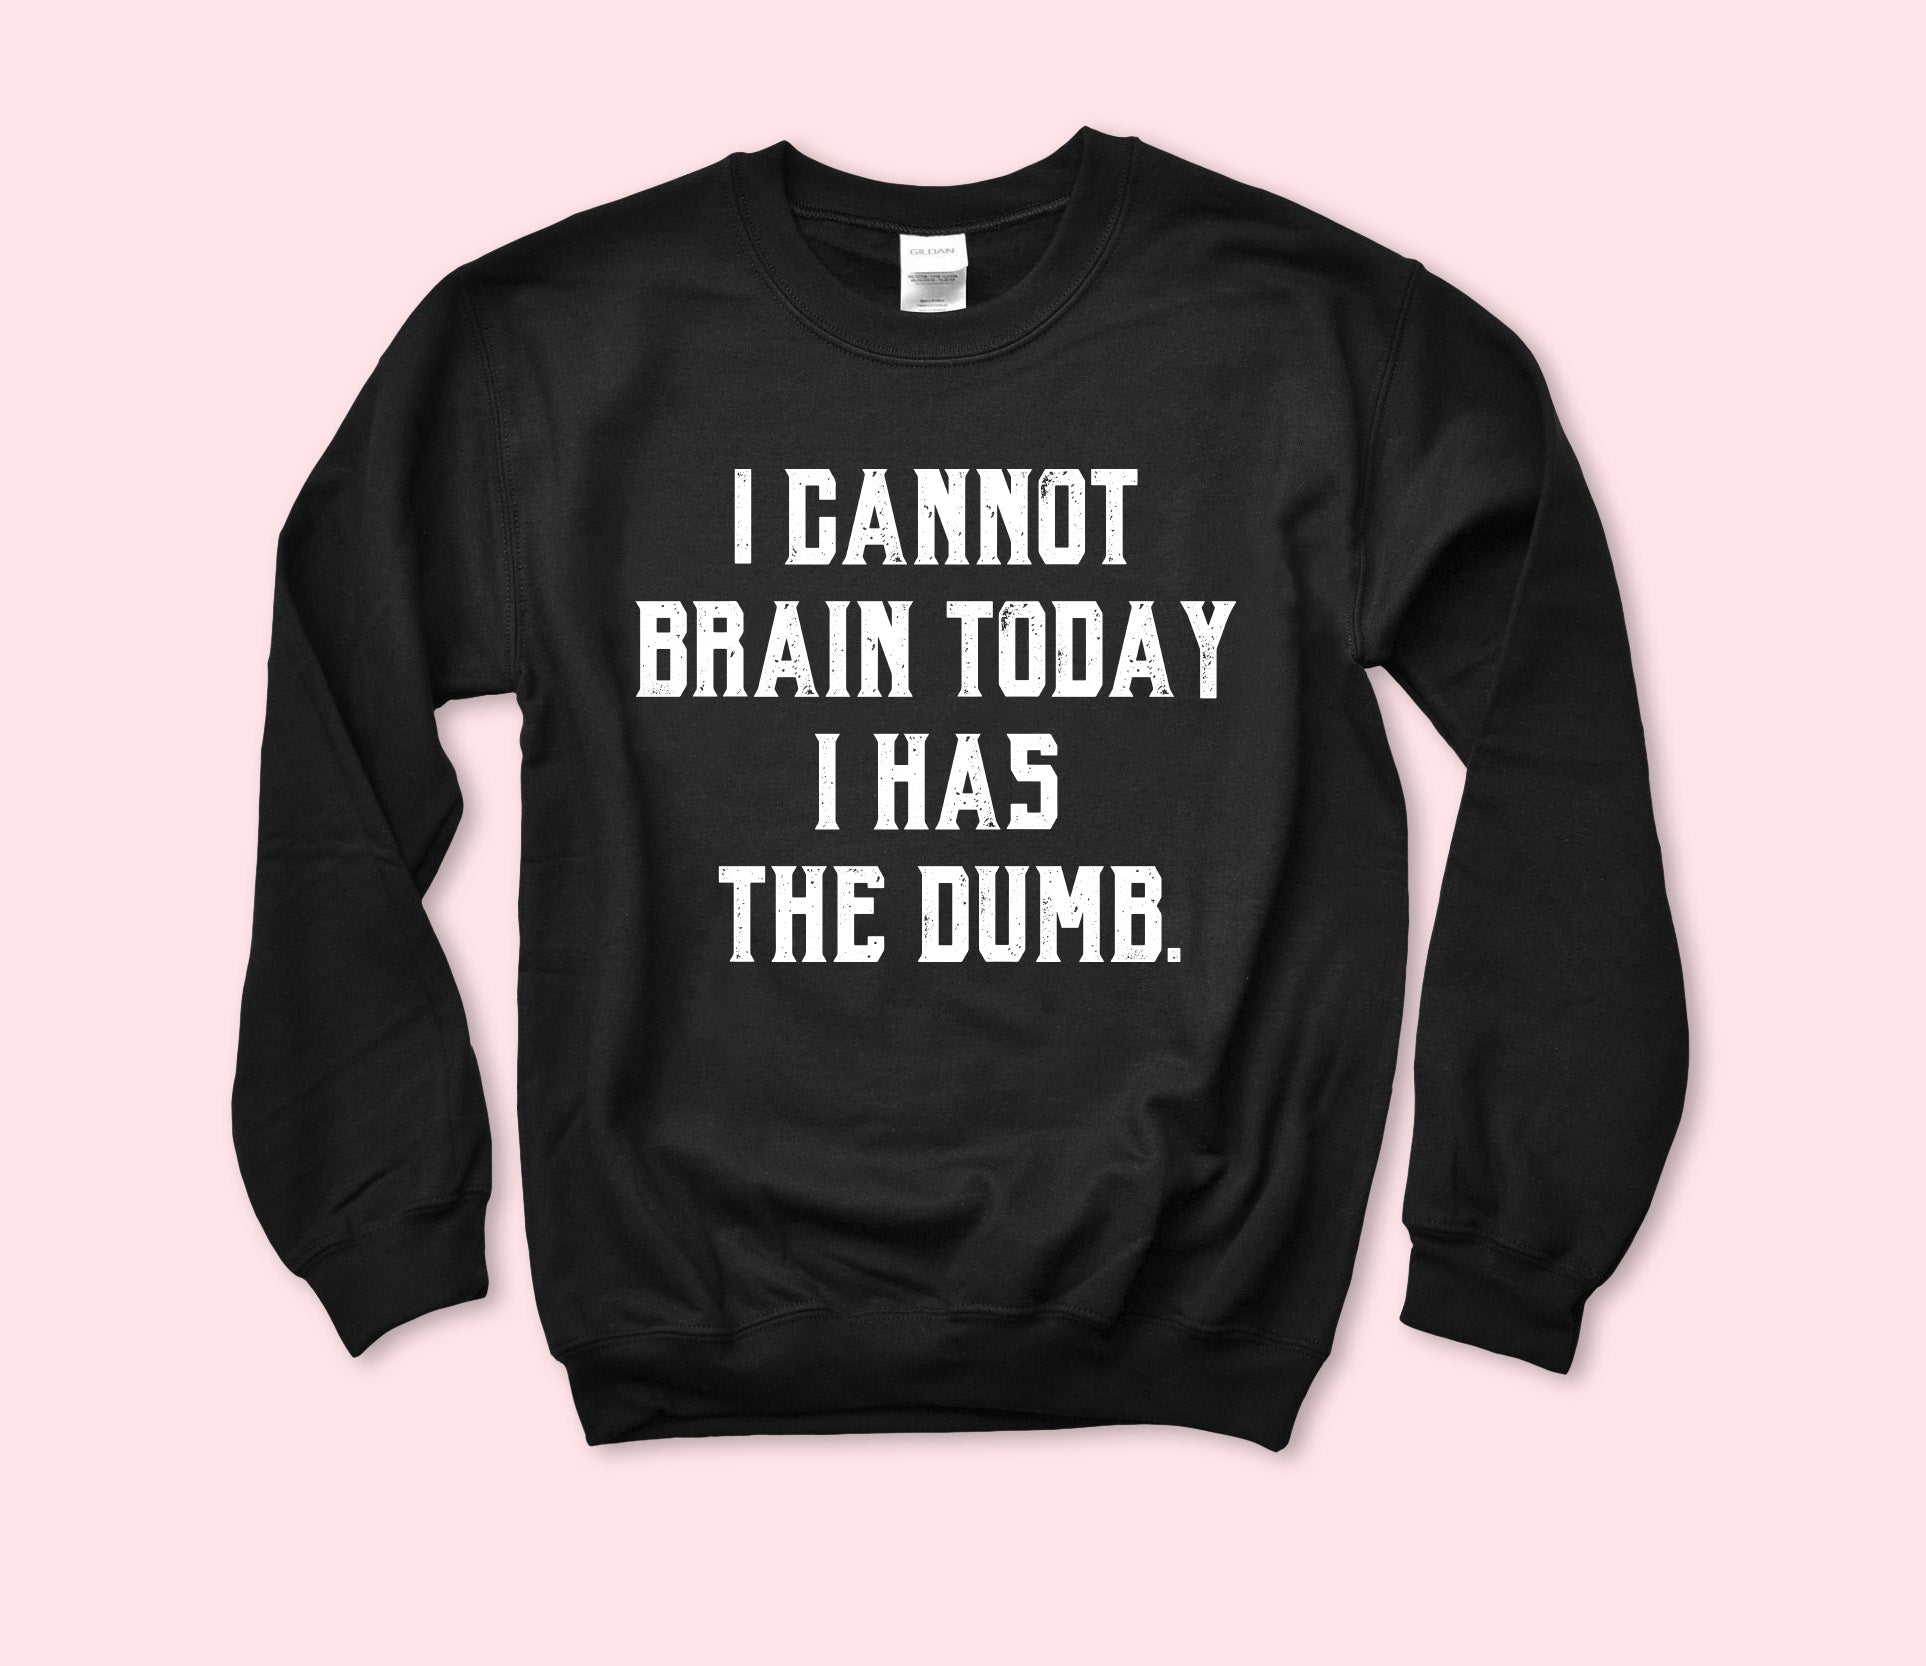 I Cannot Brain Today Sweatshirt